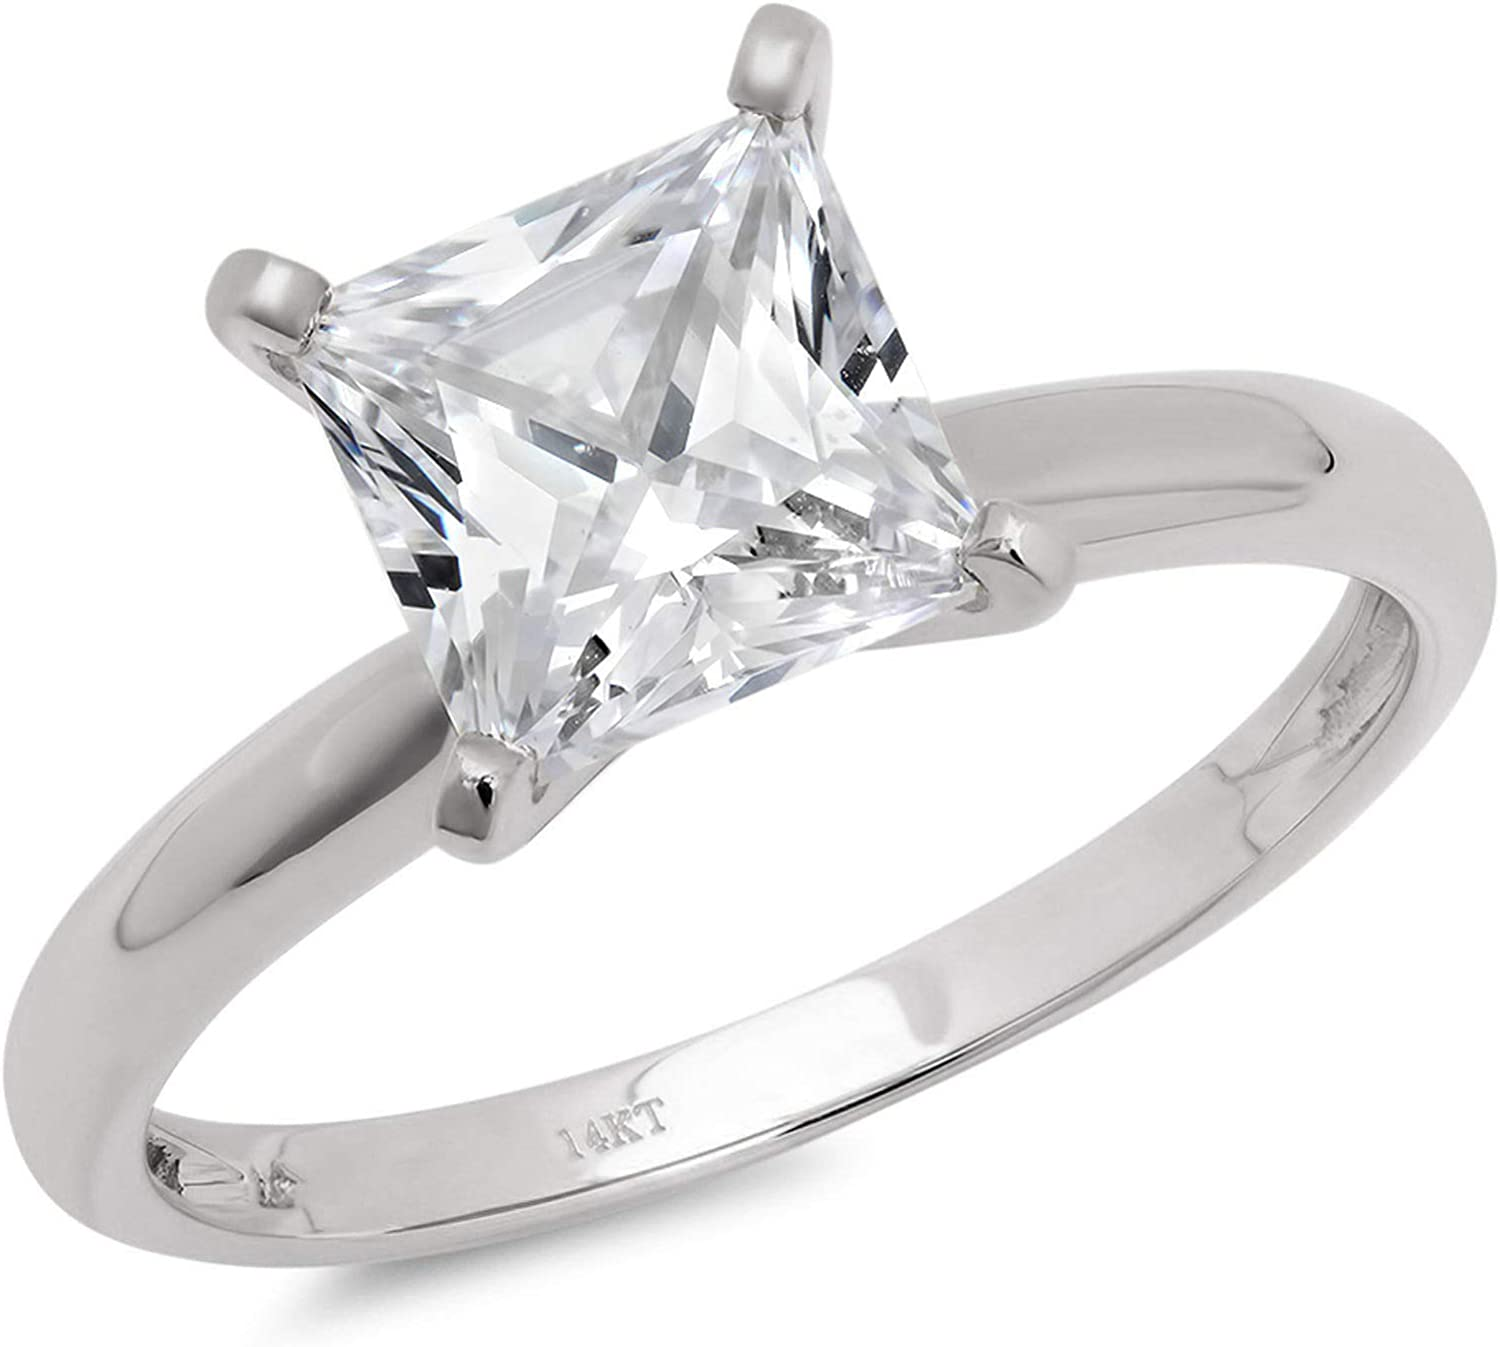 1.9ct Brilliant Princess Cut Solitaire Stunning Genuine Lab Created White Sapphire Ideal VVS1 D 4-Prong Engagement Wedding Bridal Promise Anniversary Ring Solid 14k White Gold for Women